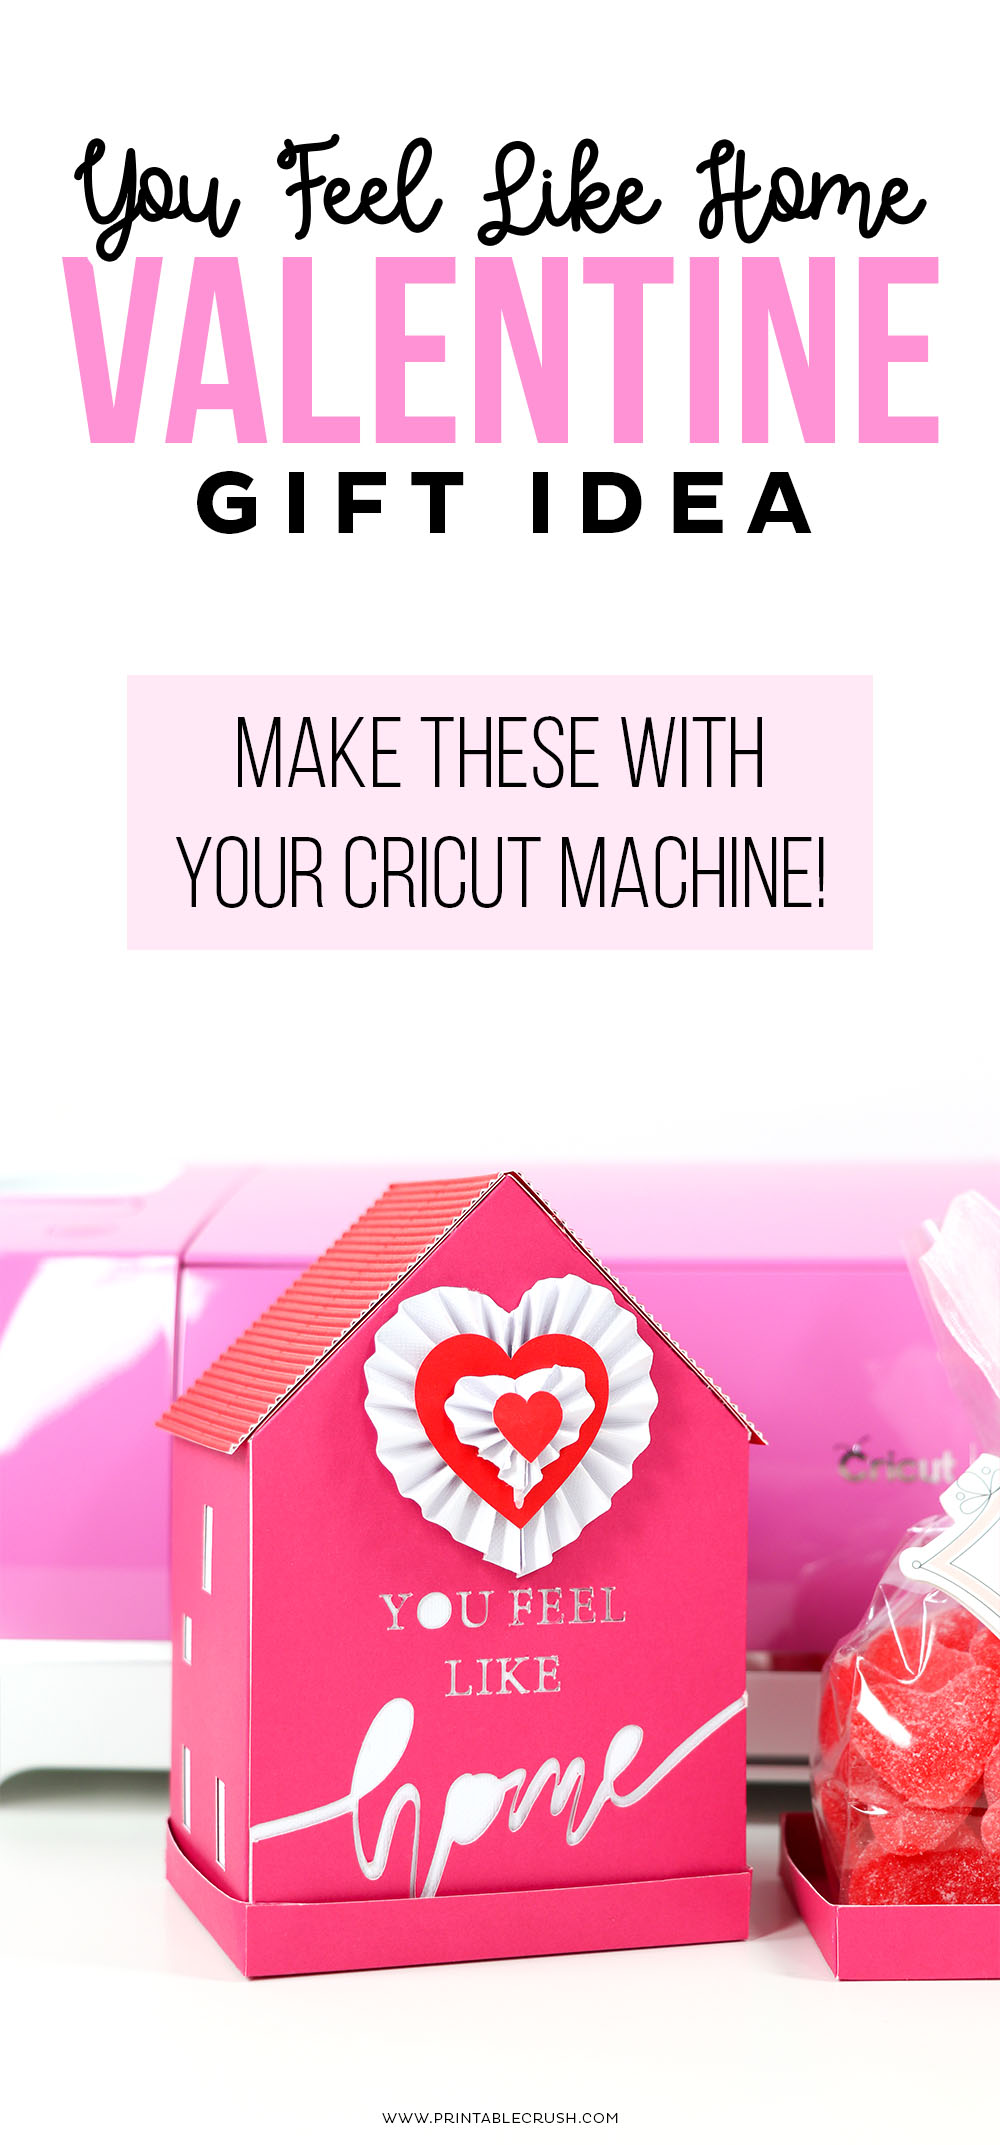 Use your Cricut to make this cute Valentine's Day Gift Idea